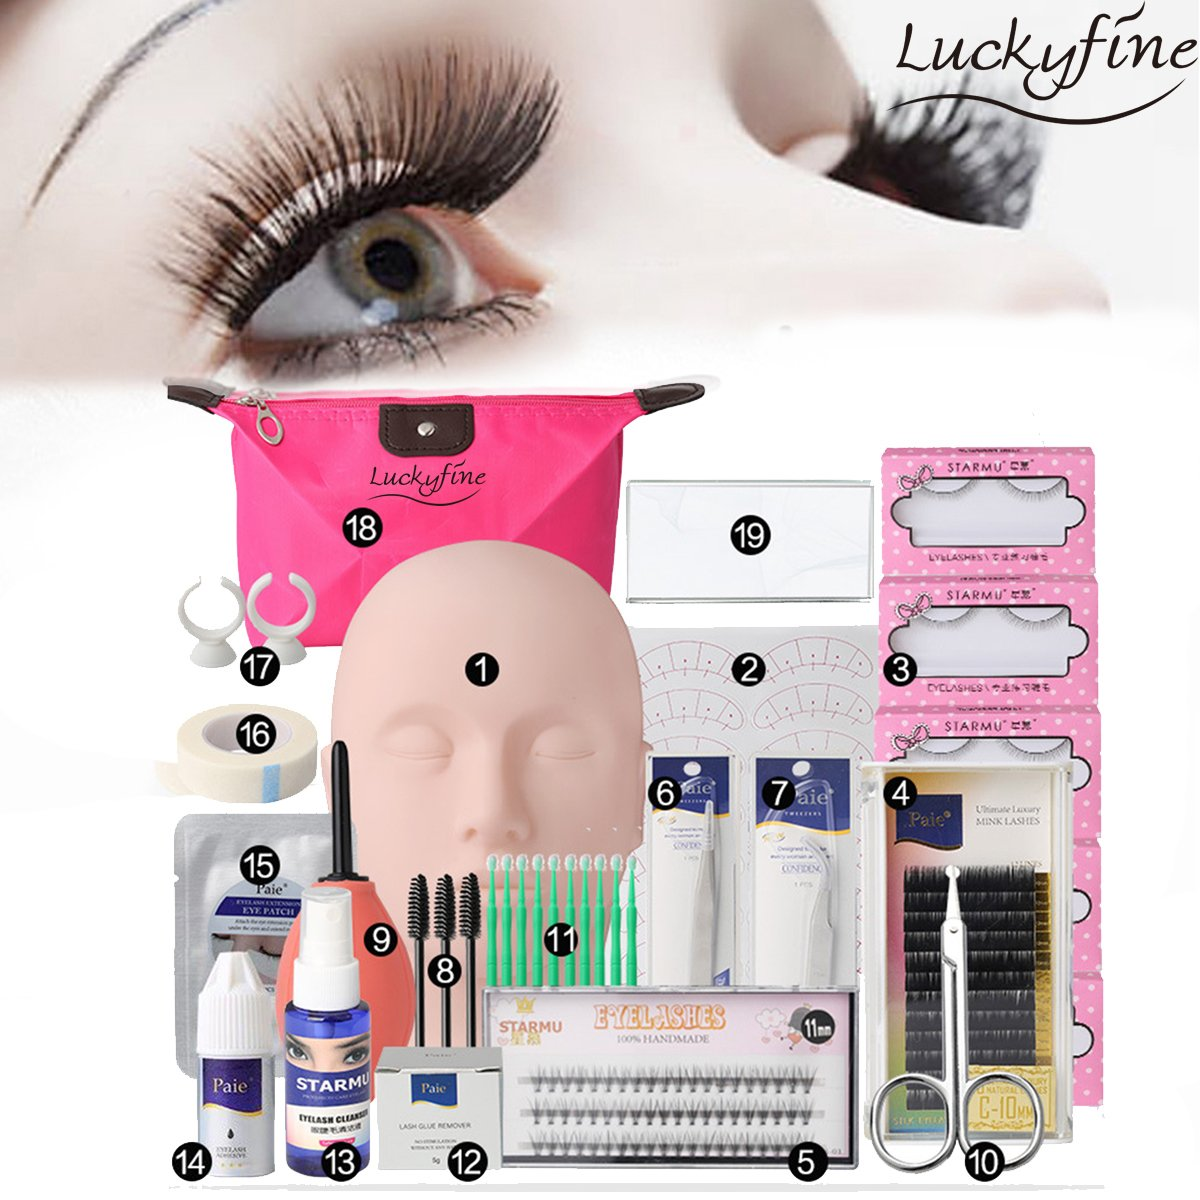 LuckyFine Pro 19pcs Eyelash Extension Kits Set False Lashes Tool Flat Head Curl Glue With Bag For Makeup Practice Eye Lashes Graft